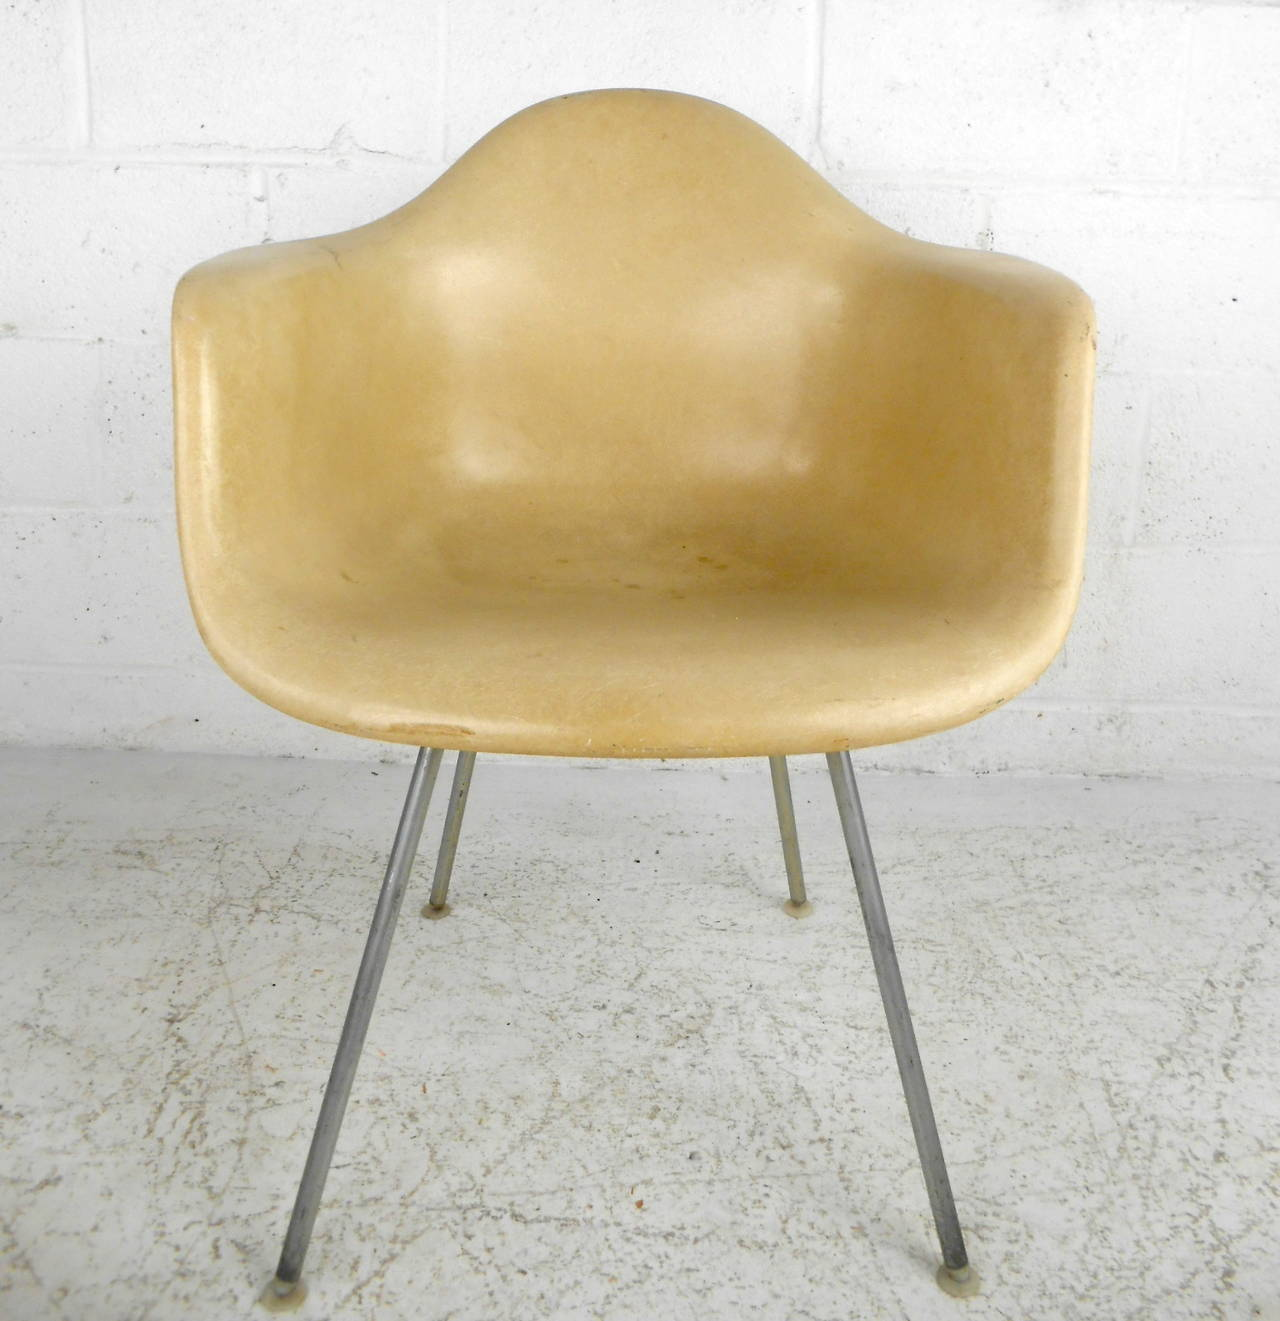 Mid Century Modern Fiberglass Shell Chair by Eames for Herman